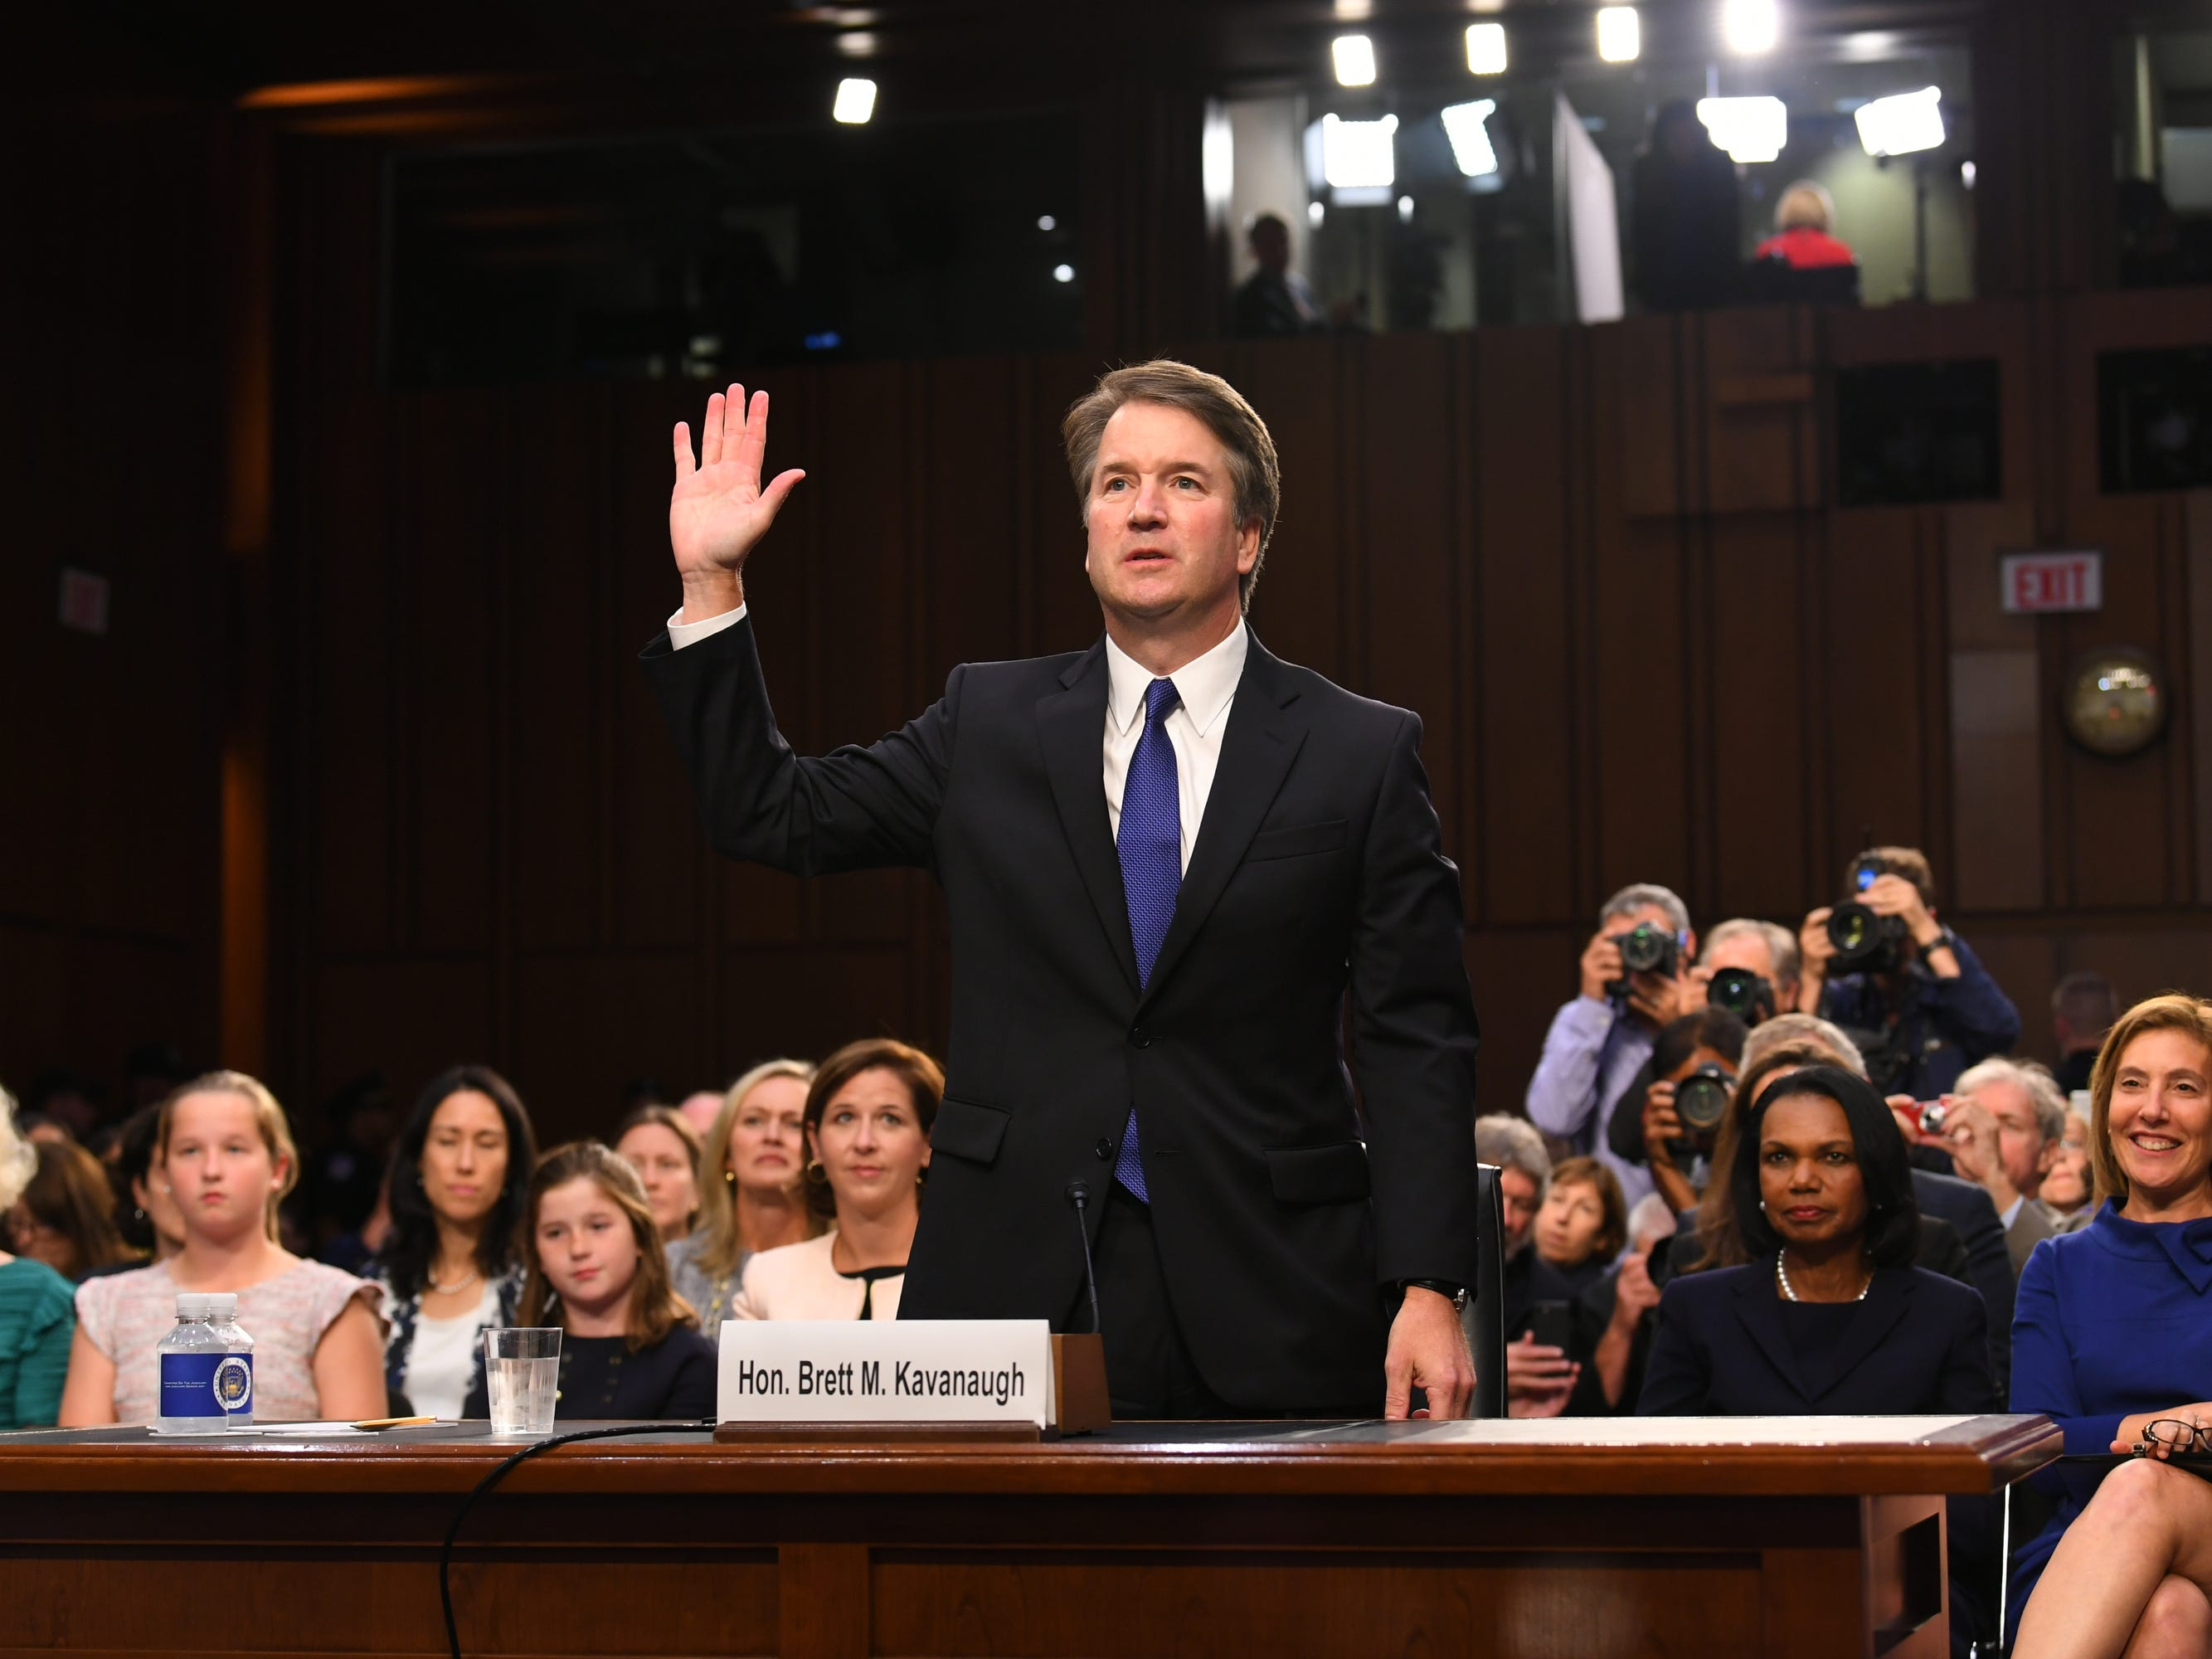 9/4/18 4:37:12 PM -- Washington, DC, U.S.A  -- Supreme Court Associate Justice nominee Brett Kavanaugh is sworn in as he appears before the Senate Judiciary Committee during his confirmation hearing on Sept. 4, 2018 in Washington. Kavanaugh was nominated by President Donald Trump to replace Justice Anthony Kennedy,who retired from the Supreme Court in July.  --    Photo by Jack Gruber, USA TODAY Staff ORG XMIT:  JG 137433 Kavanaugh Confir 9/4/2018 (Via OlyDrop)